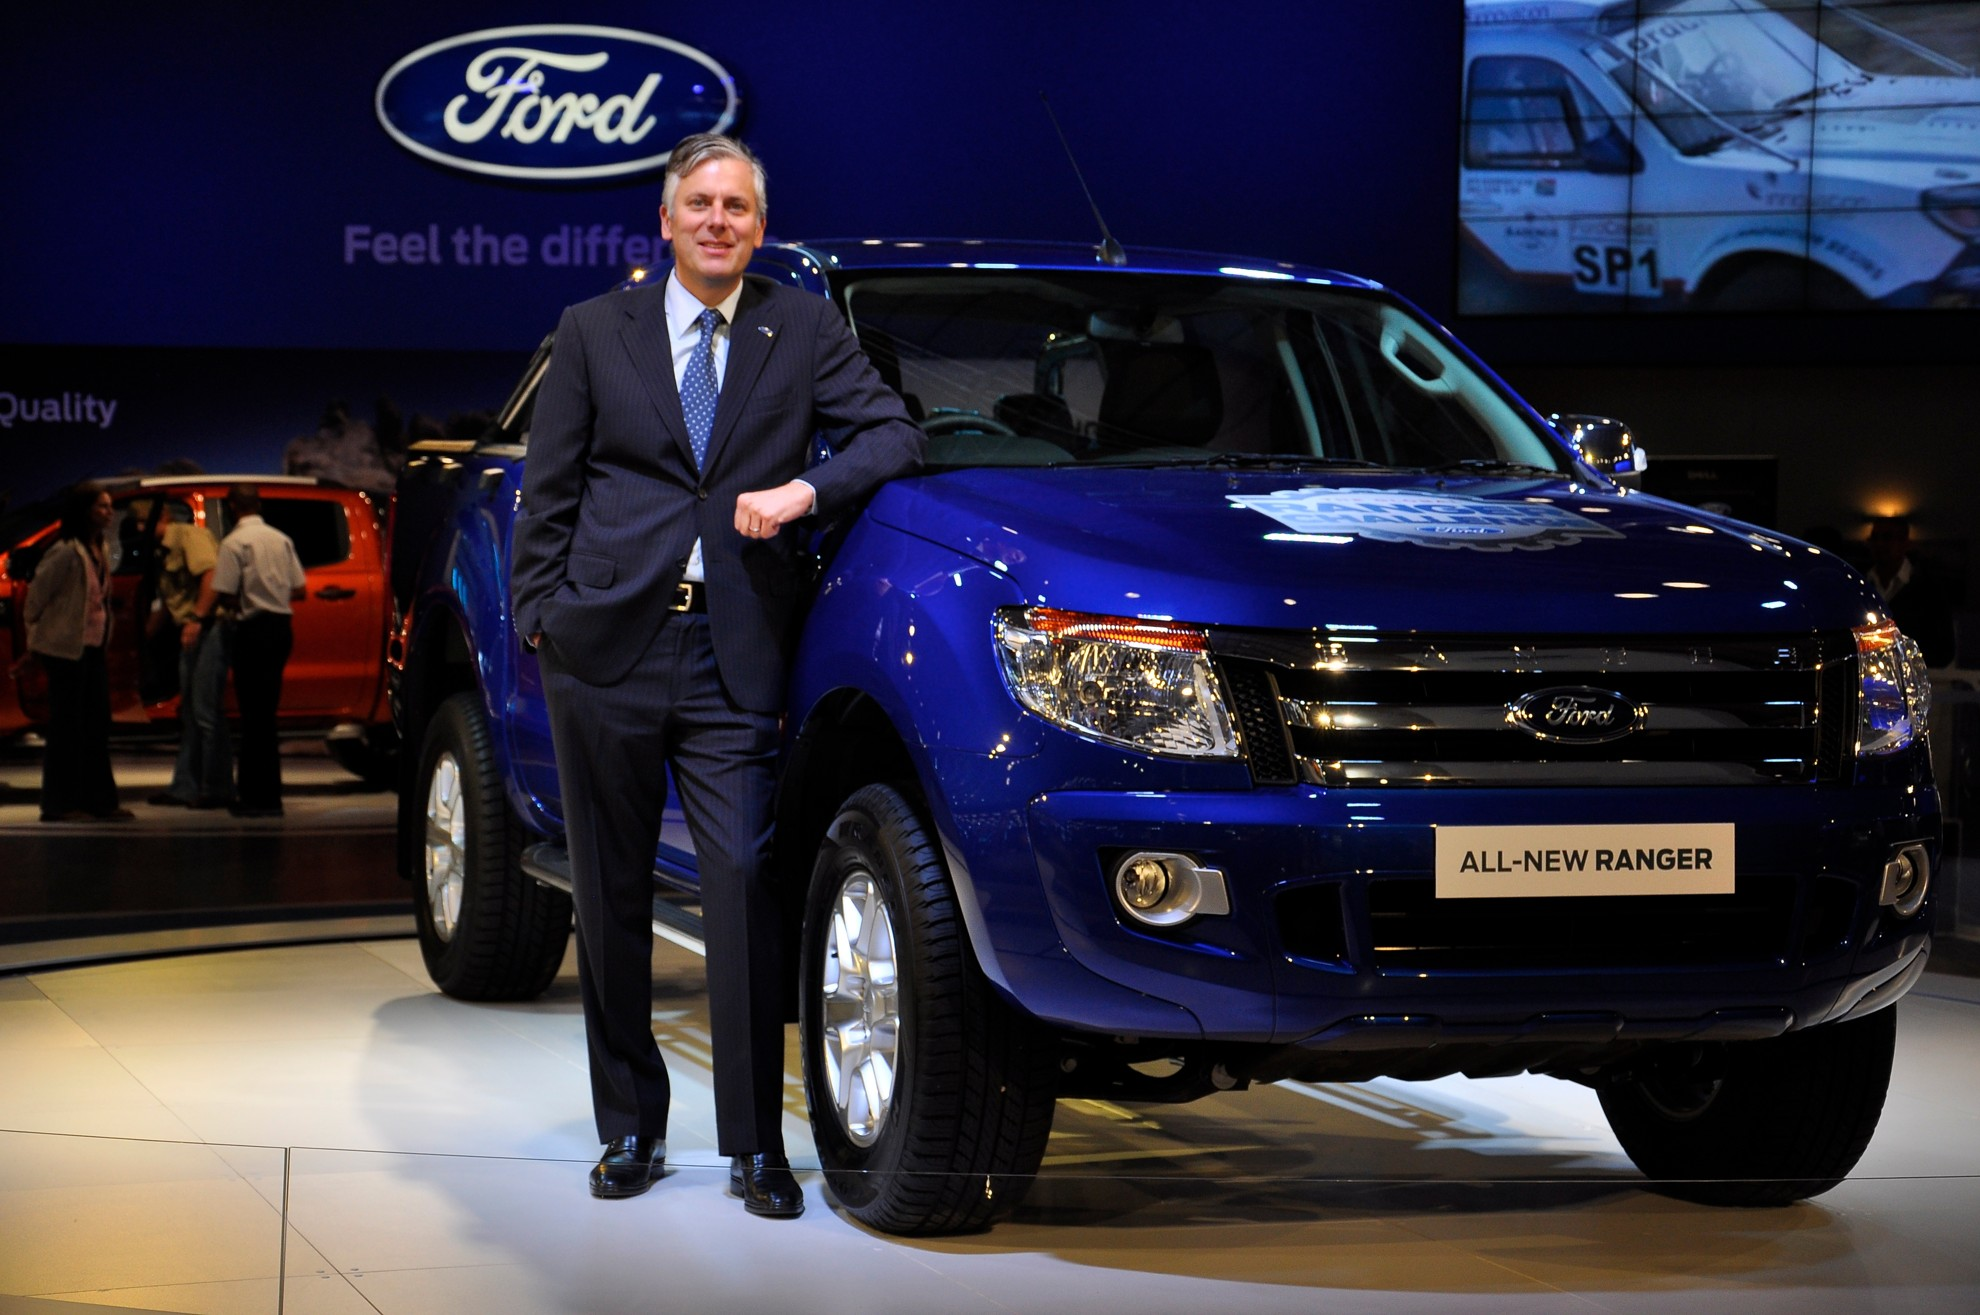 Ford south africa bids farewell to dean stoneley for Ford motor company service department